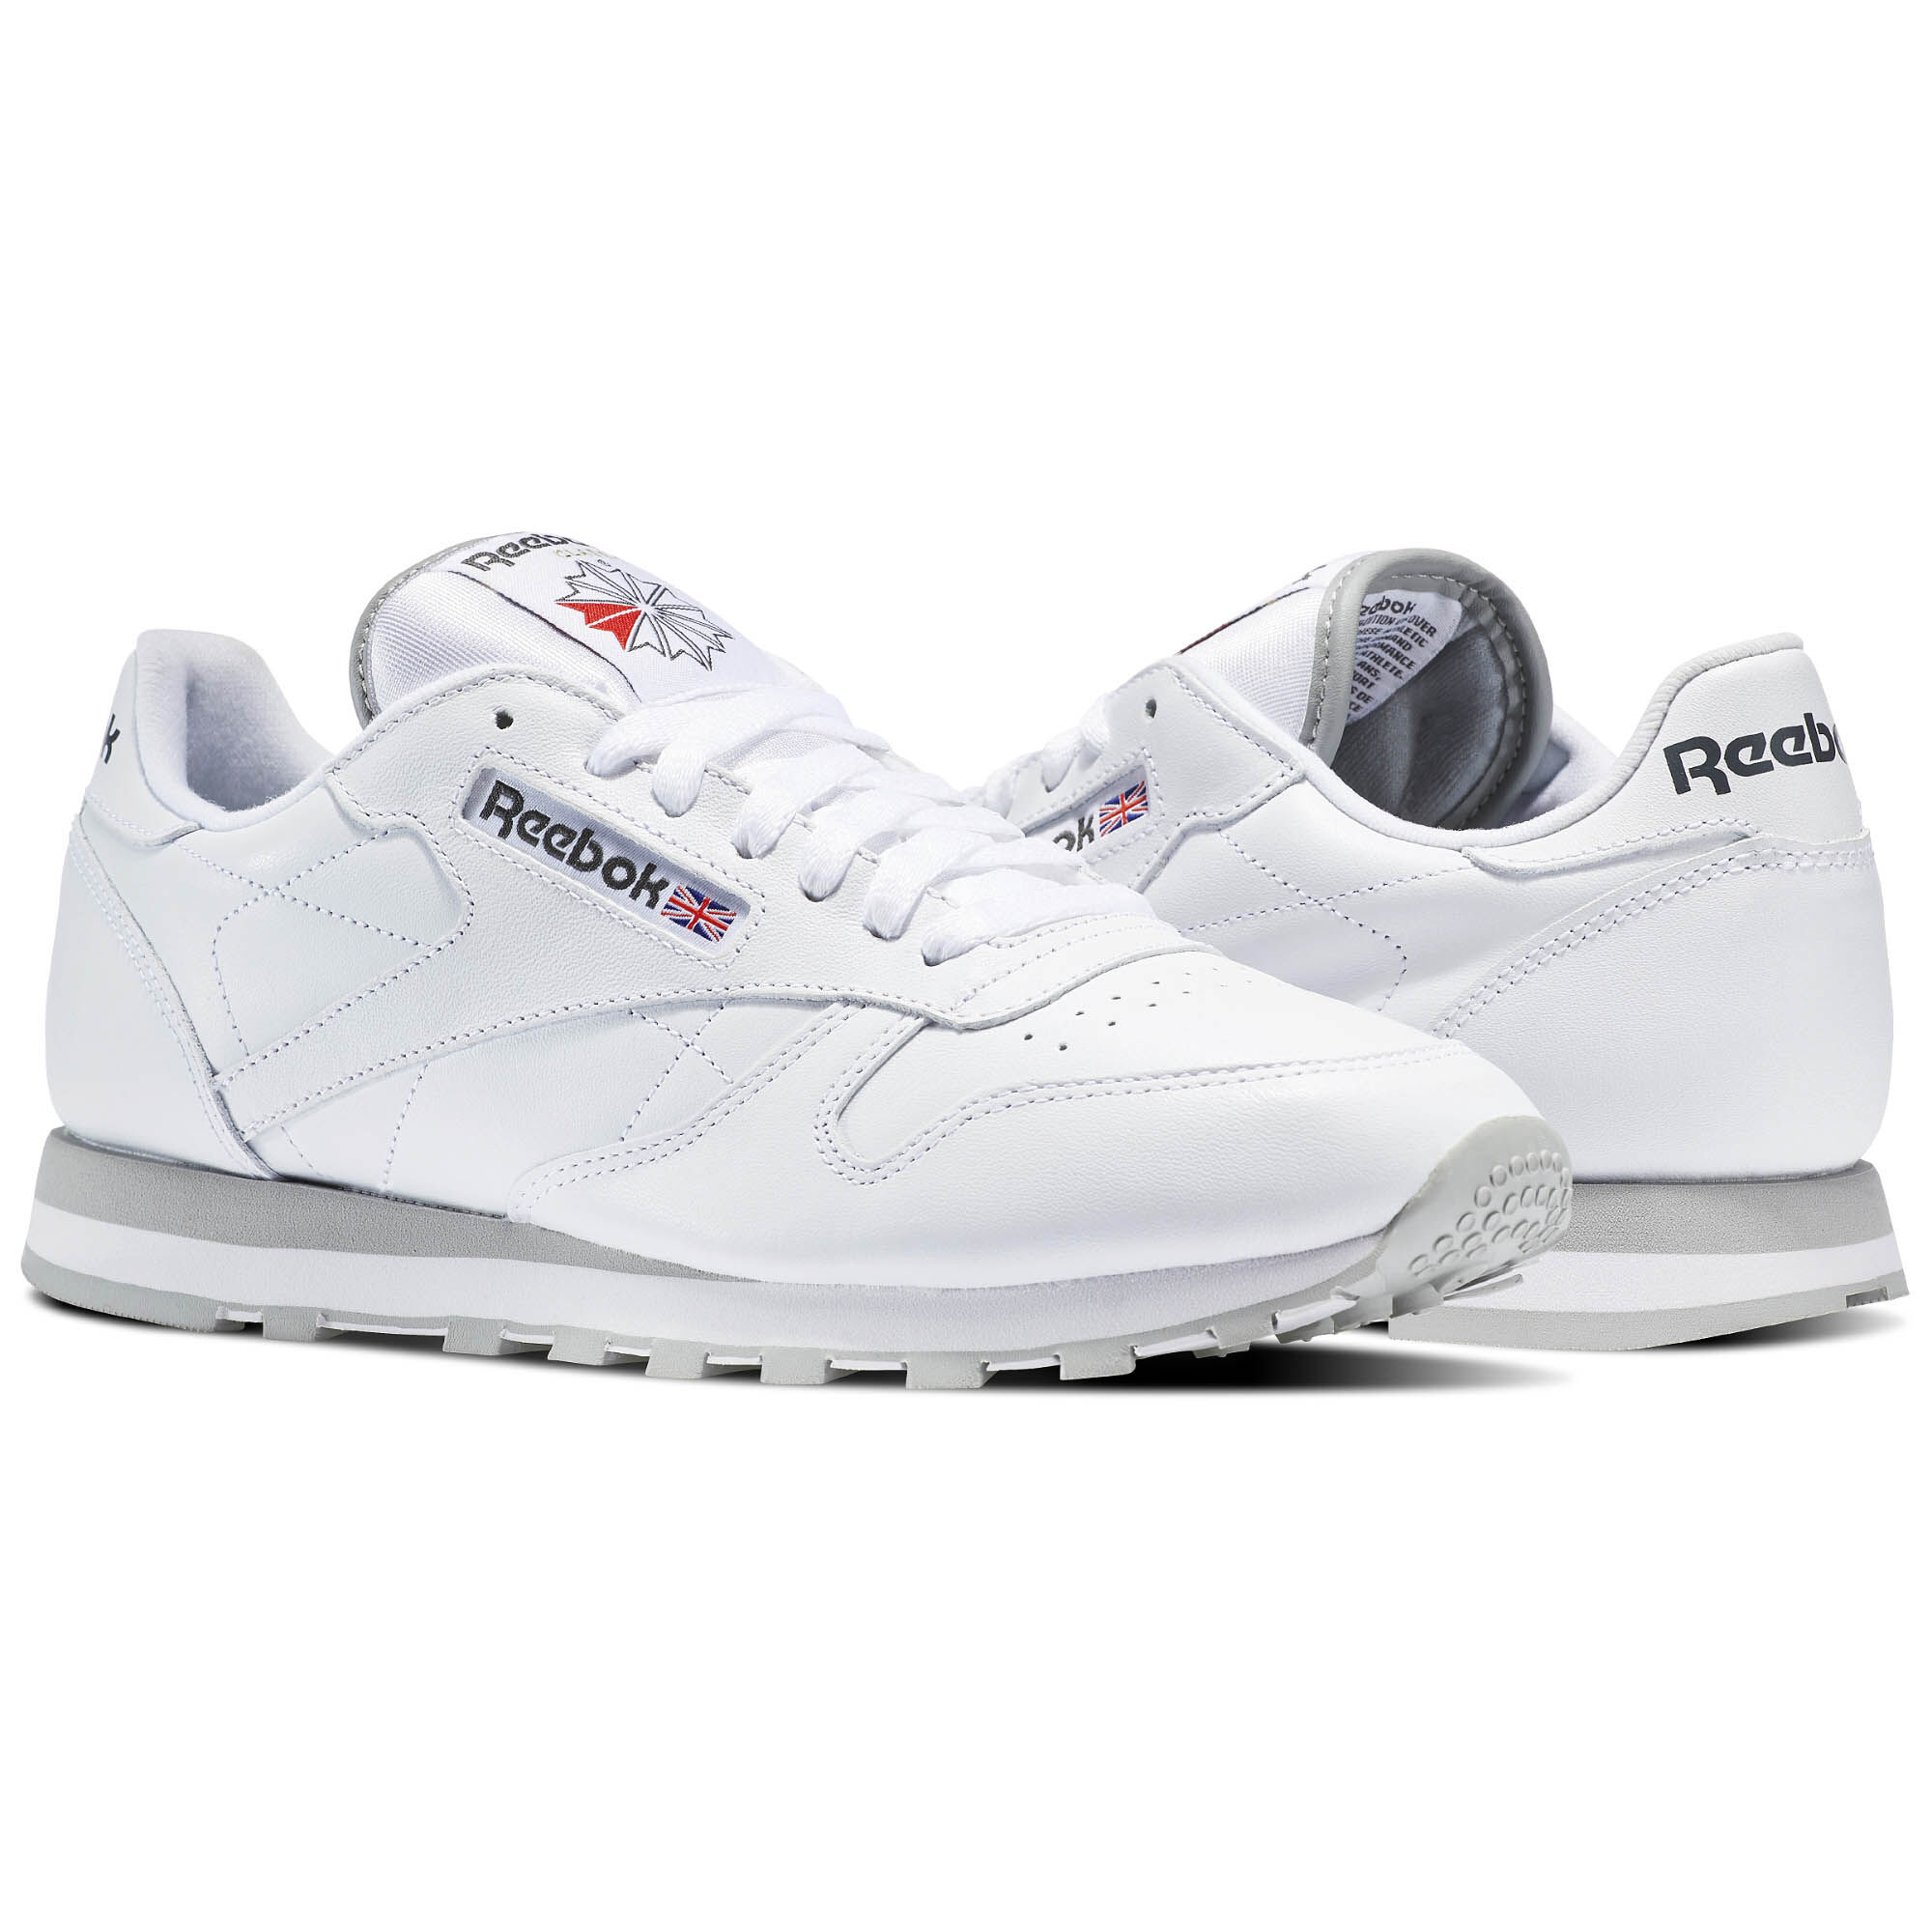 Reebok - Classic Leather White / Lt. Grey 2214